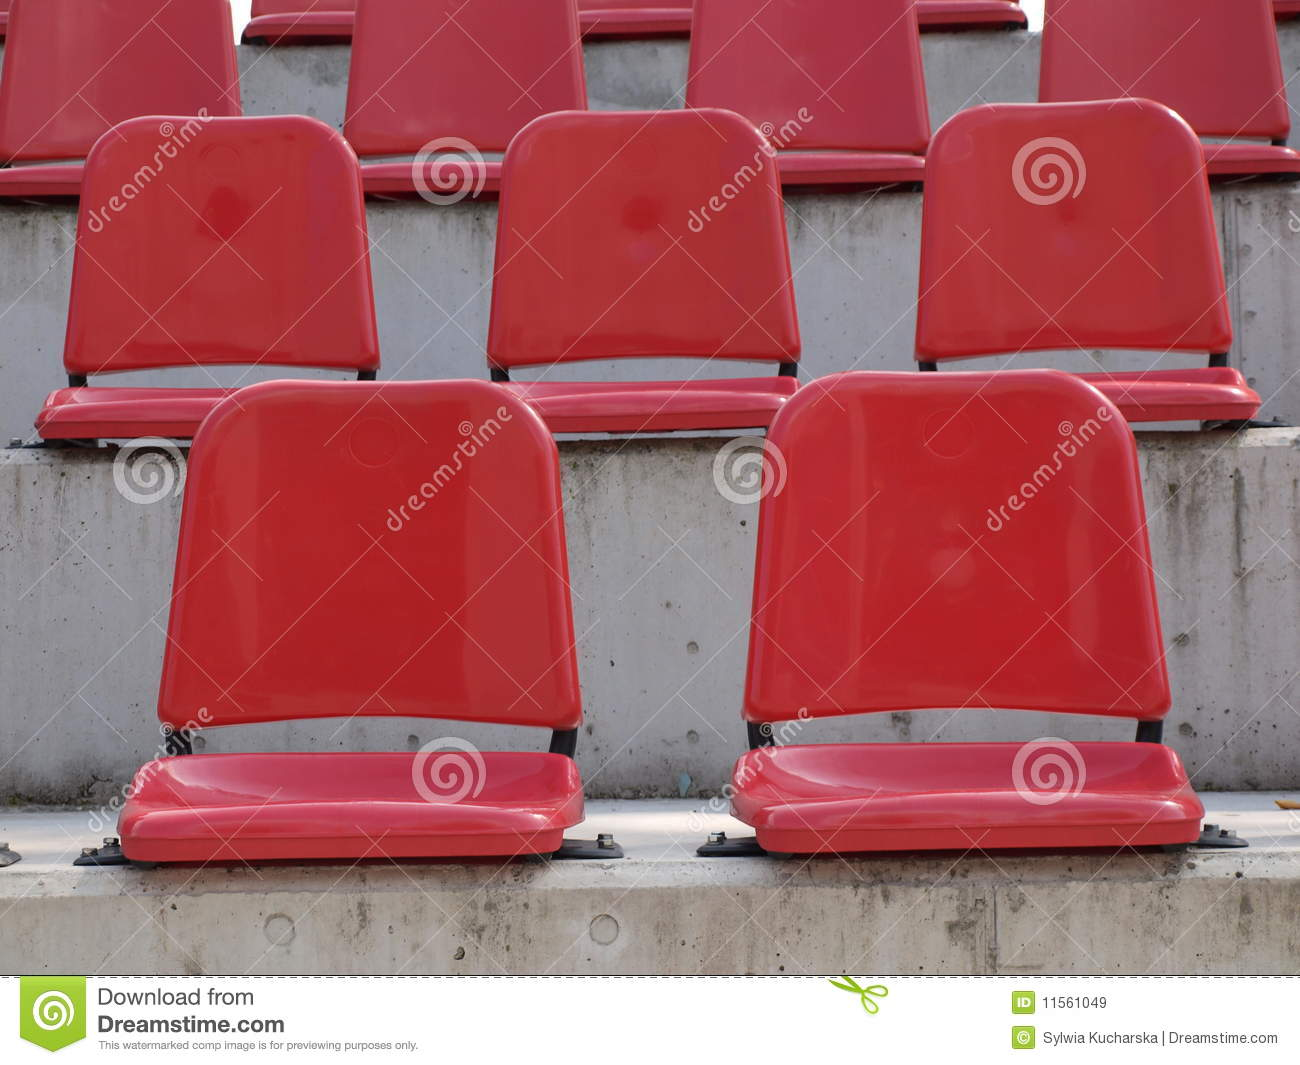 Stadium chair amp stadium bleacher chairs sportsunlimited com source - Bleacher Empty Red Seats Empty Red Bleacher Seats Royalty Free Stock Images